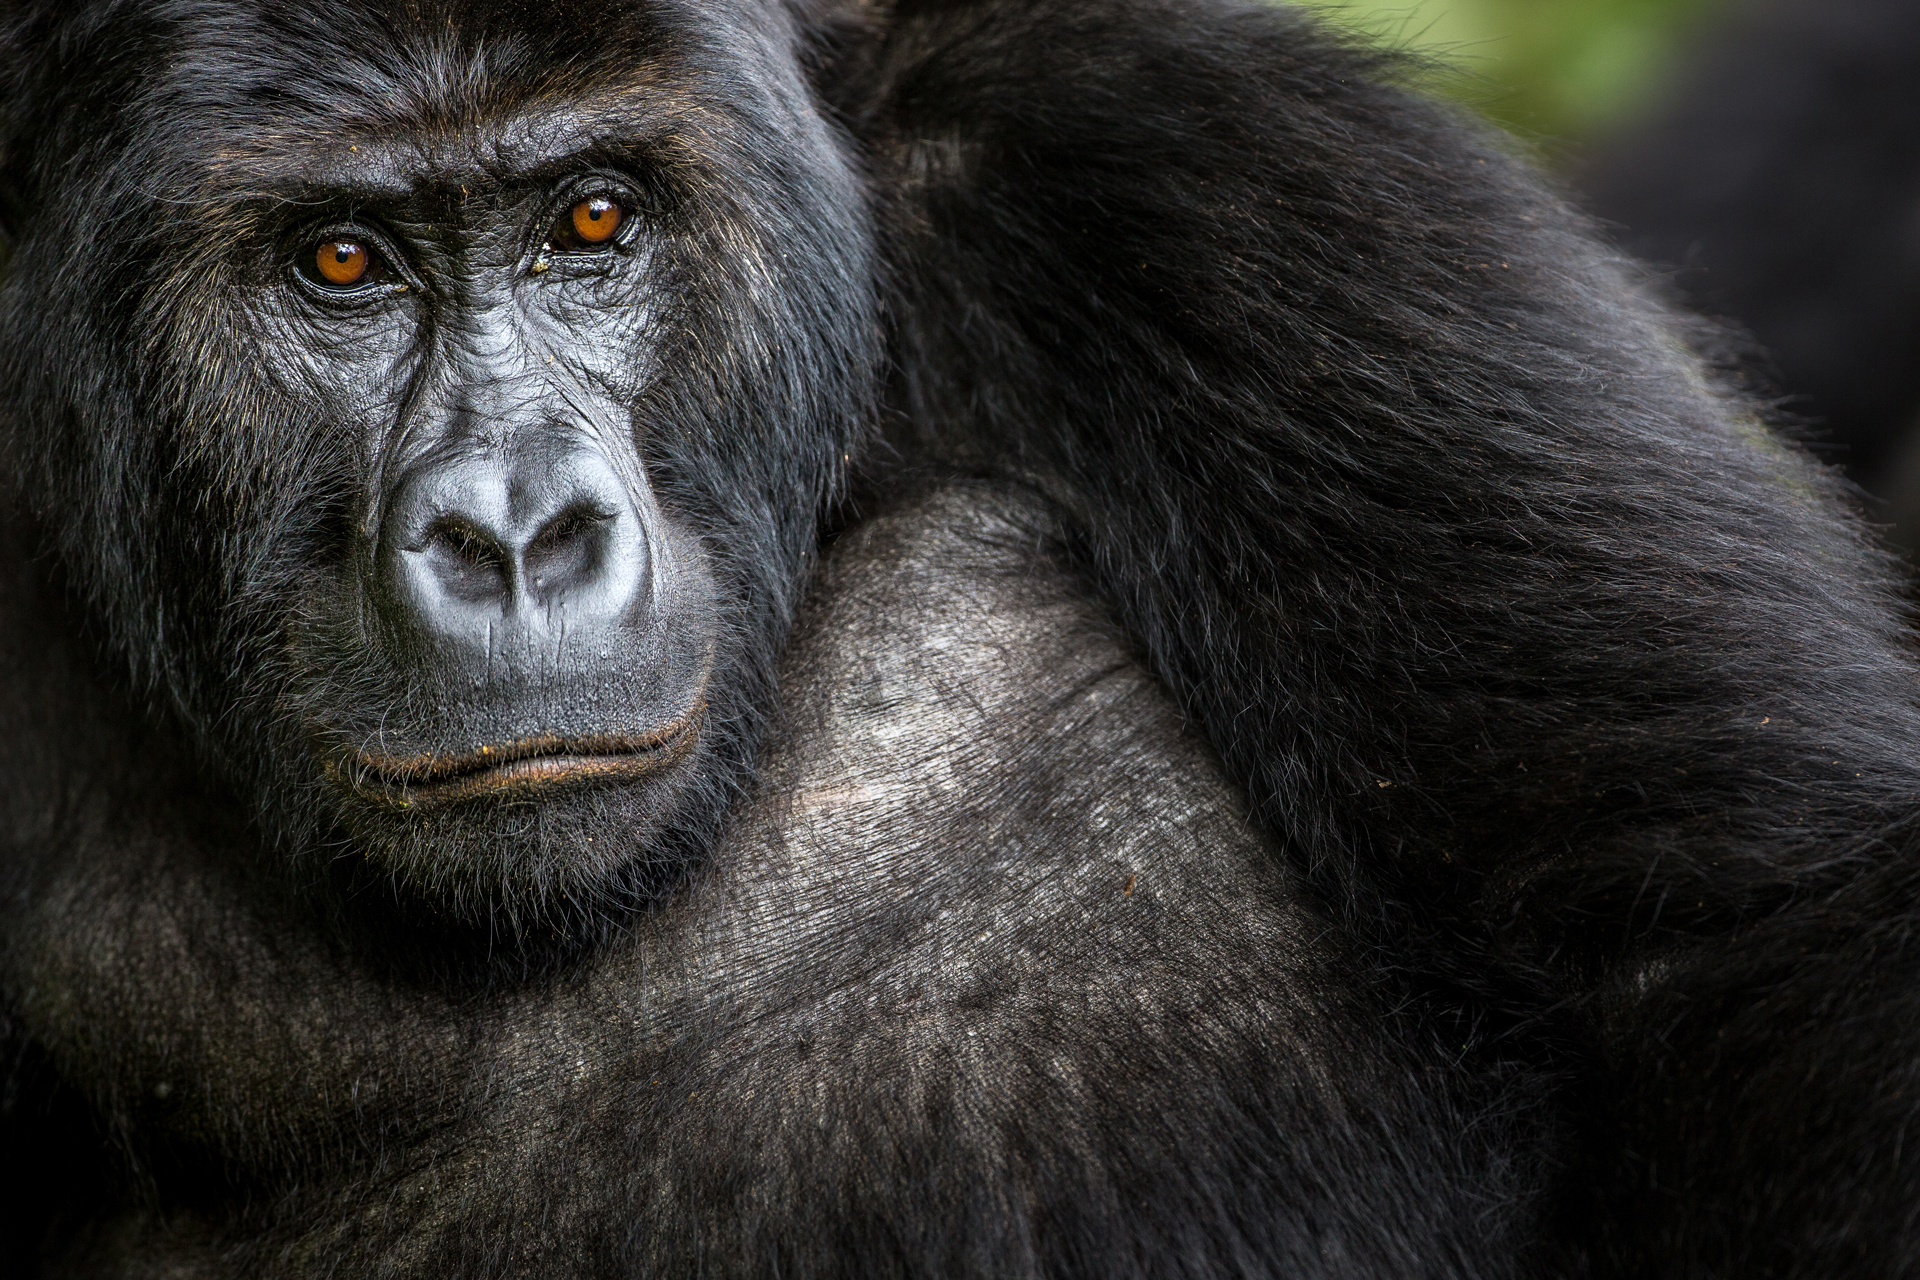 A female Grauer's gorilla calmly observes the team as it approaches